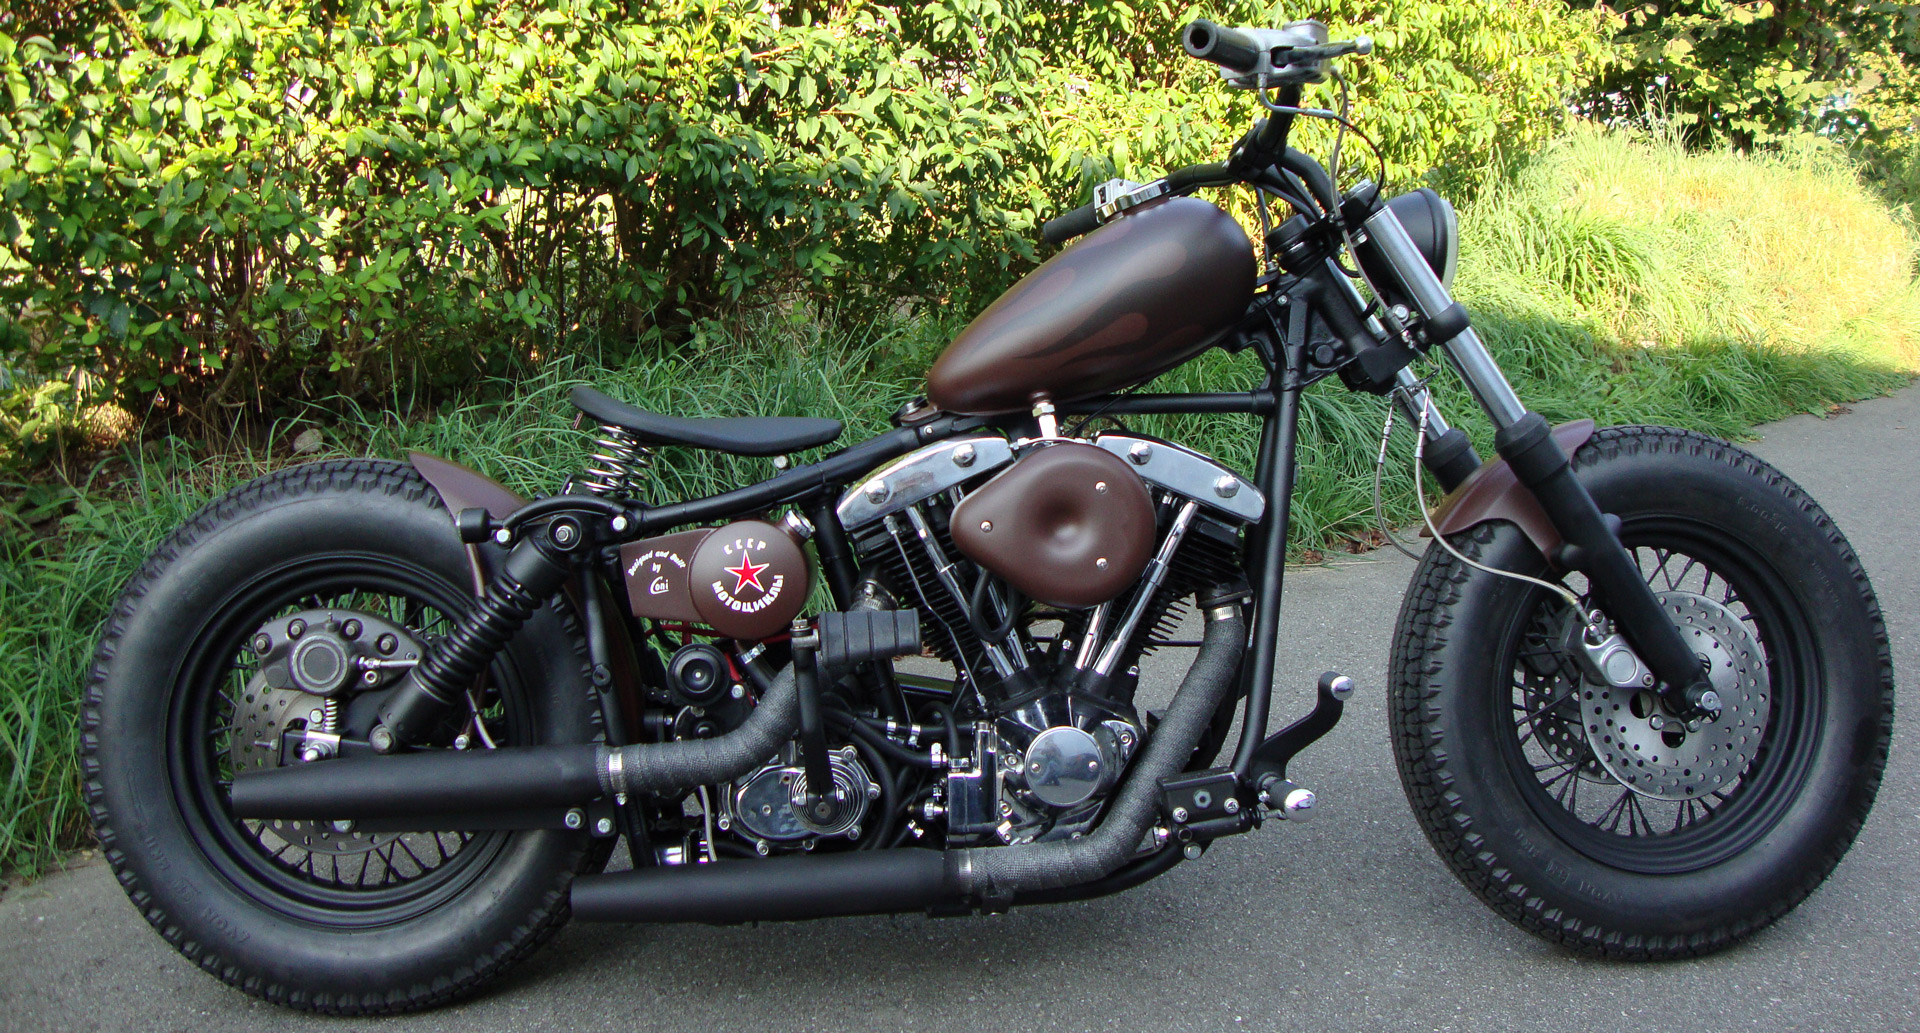 bobber umbau cb 0524 made by cccp motorcycles gmbh malters. Black Bedroom Furniture Sets. Home Design Ideas